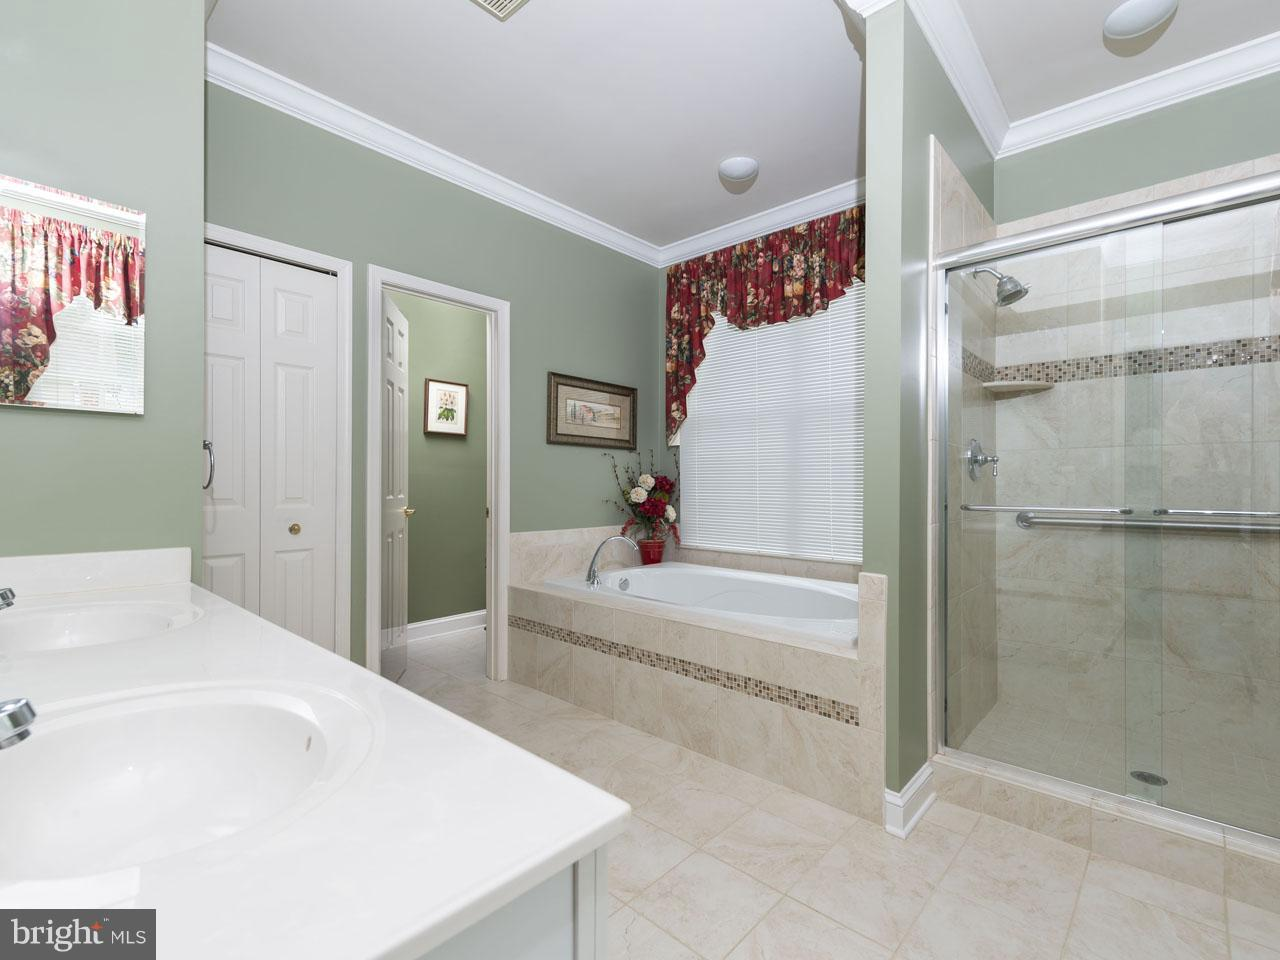 1005040466-300638081809-2021-07-22-06-45-09        Gainesville Delaware Real Estate For Sale   MLS# 1005040466  - Best of Northern Virginia